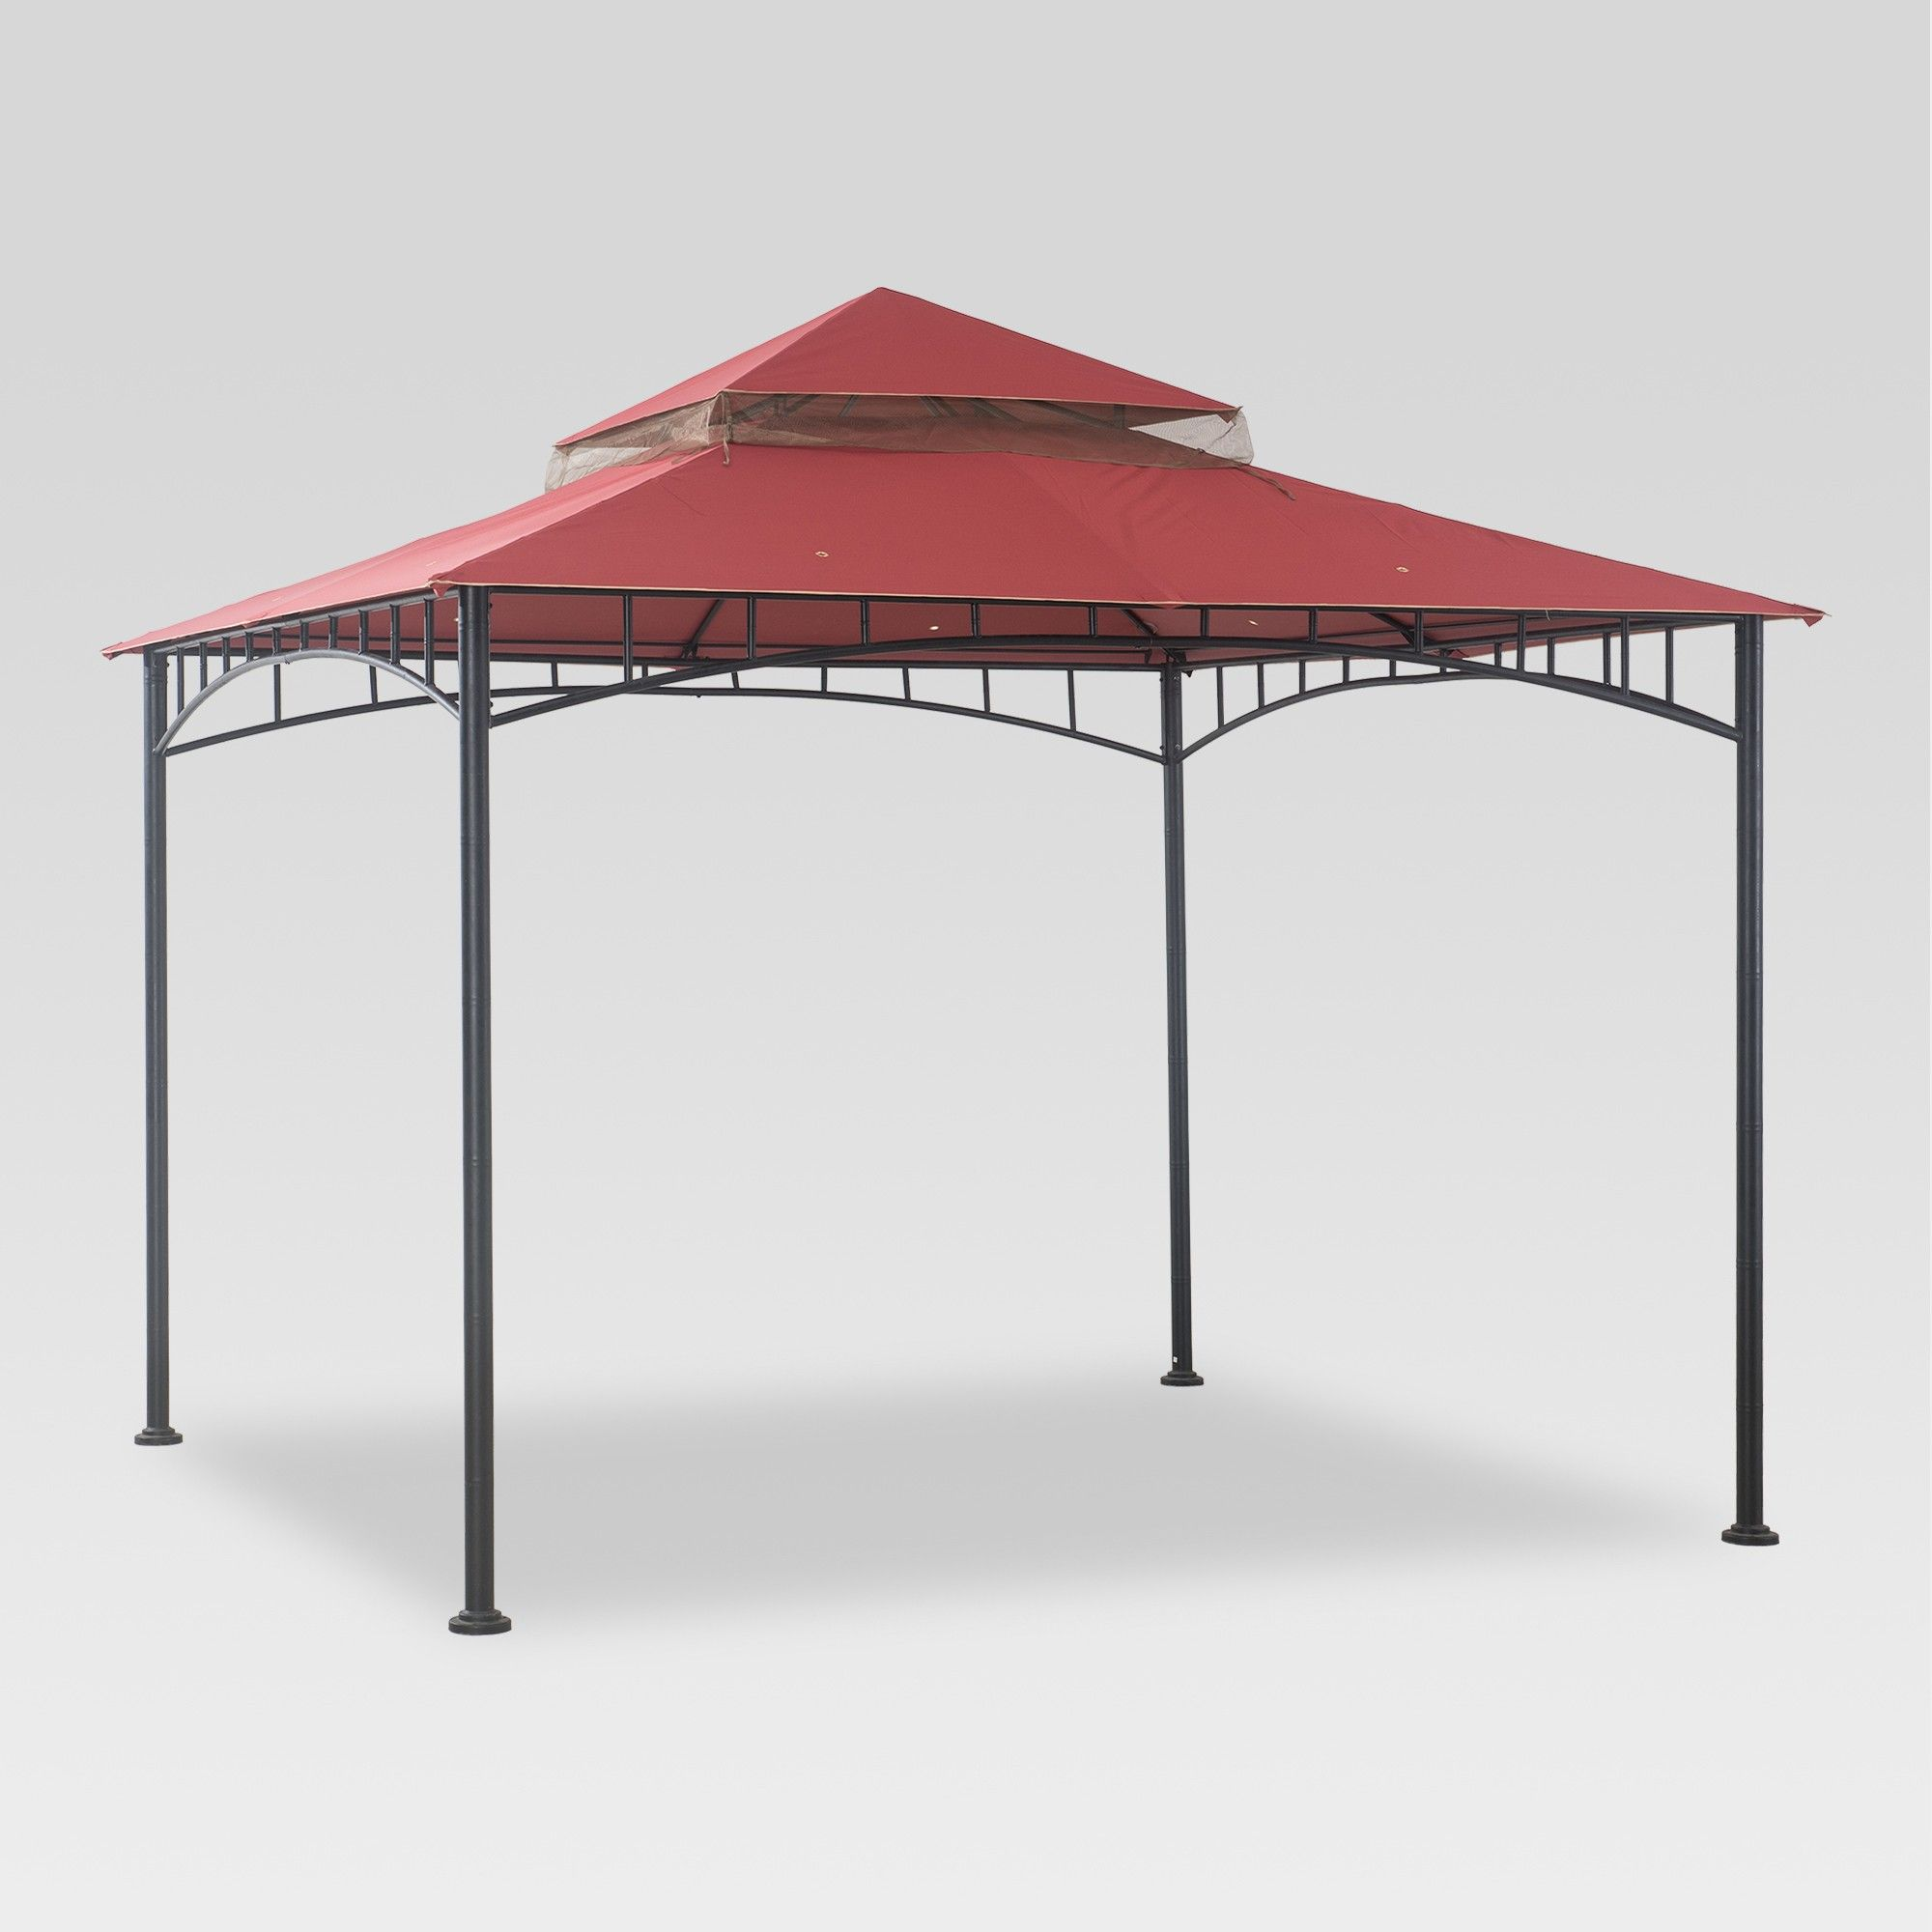 Madaga 10 X 10 Replacement Gazebo Canopy Red Threshold Gazebo Canopy Gazebo Canopy